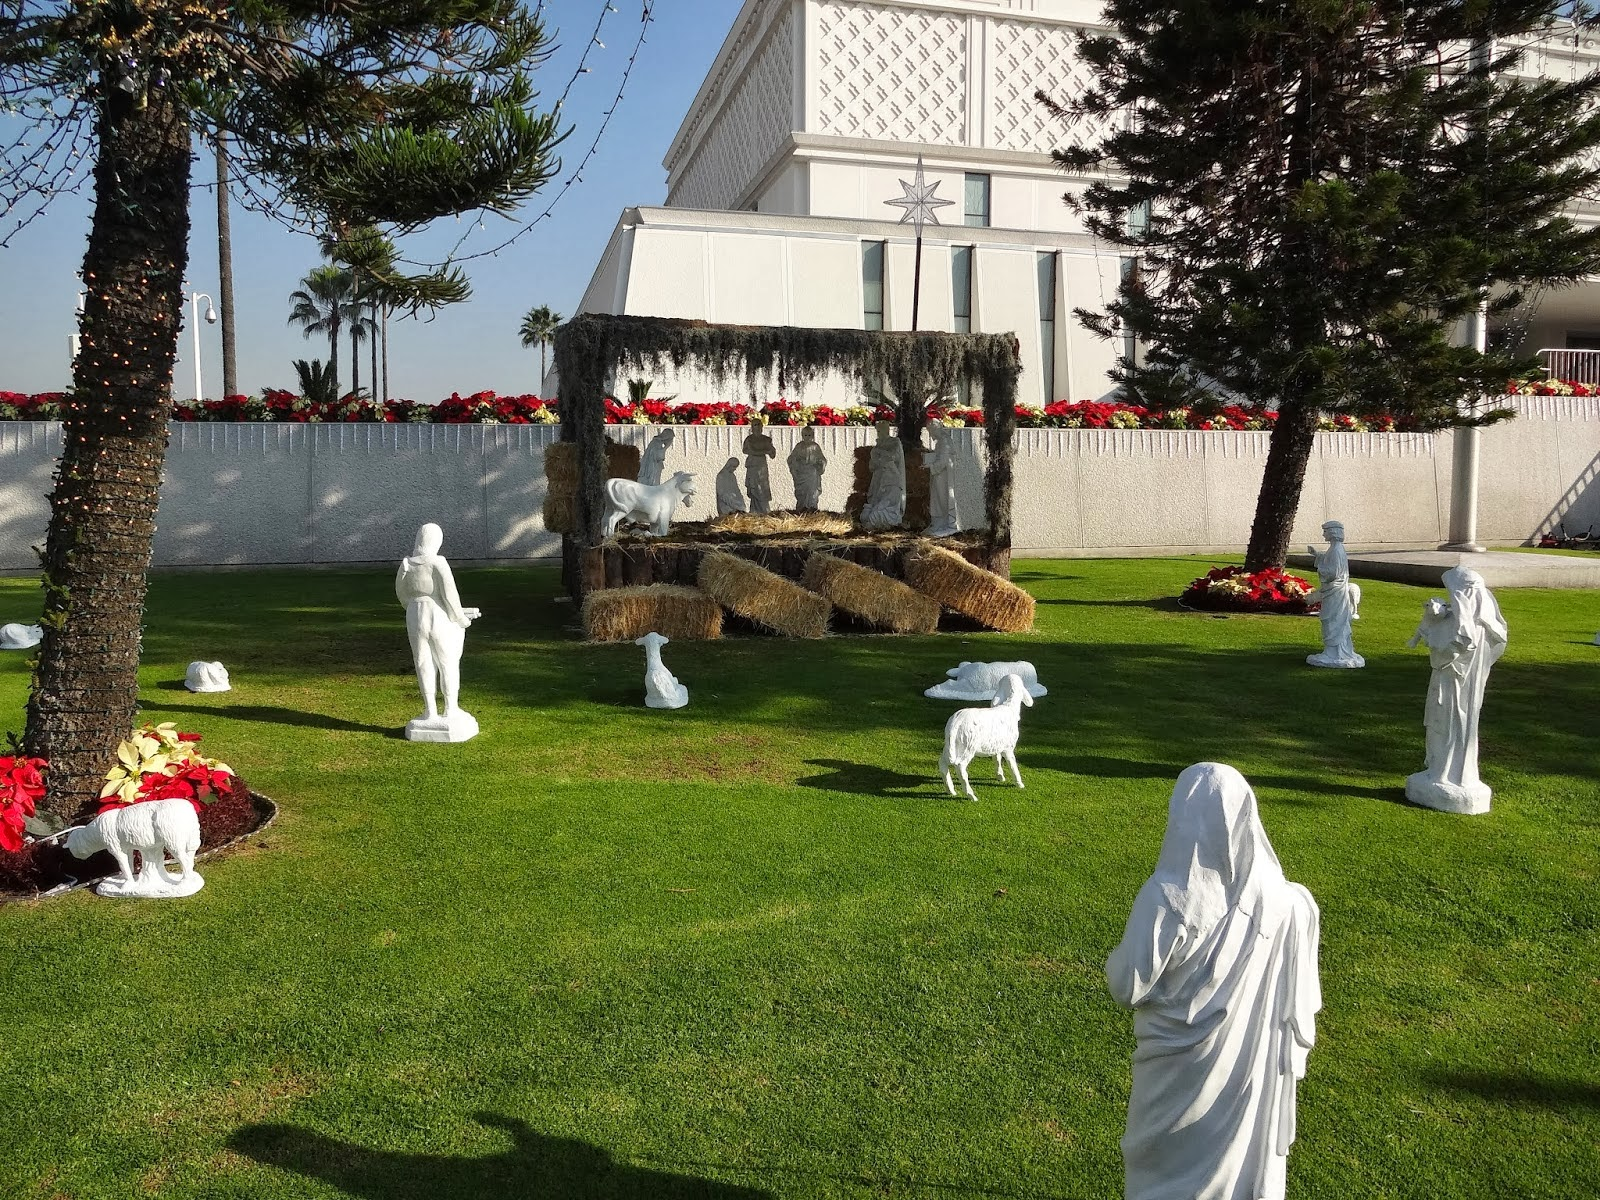 Nativity & Poinsettias on the Mexico City L D S Temple Grounds